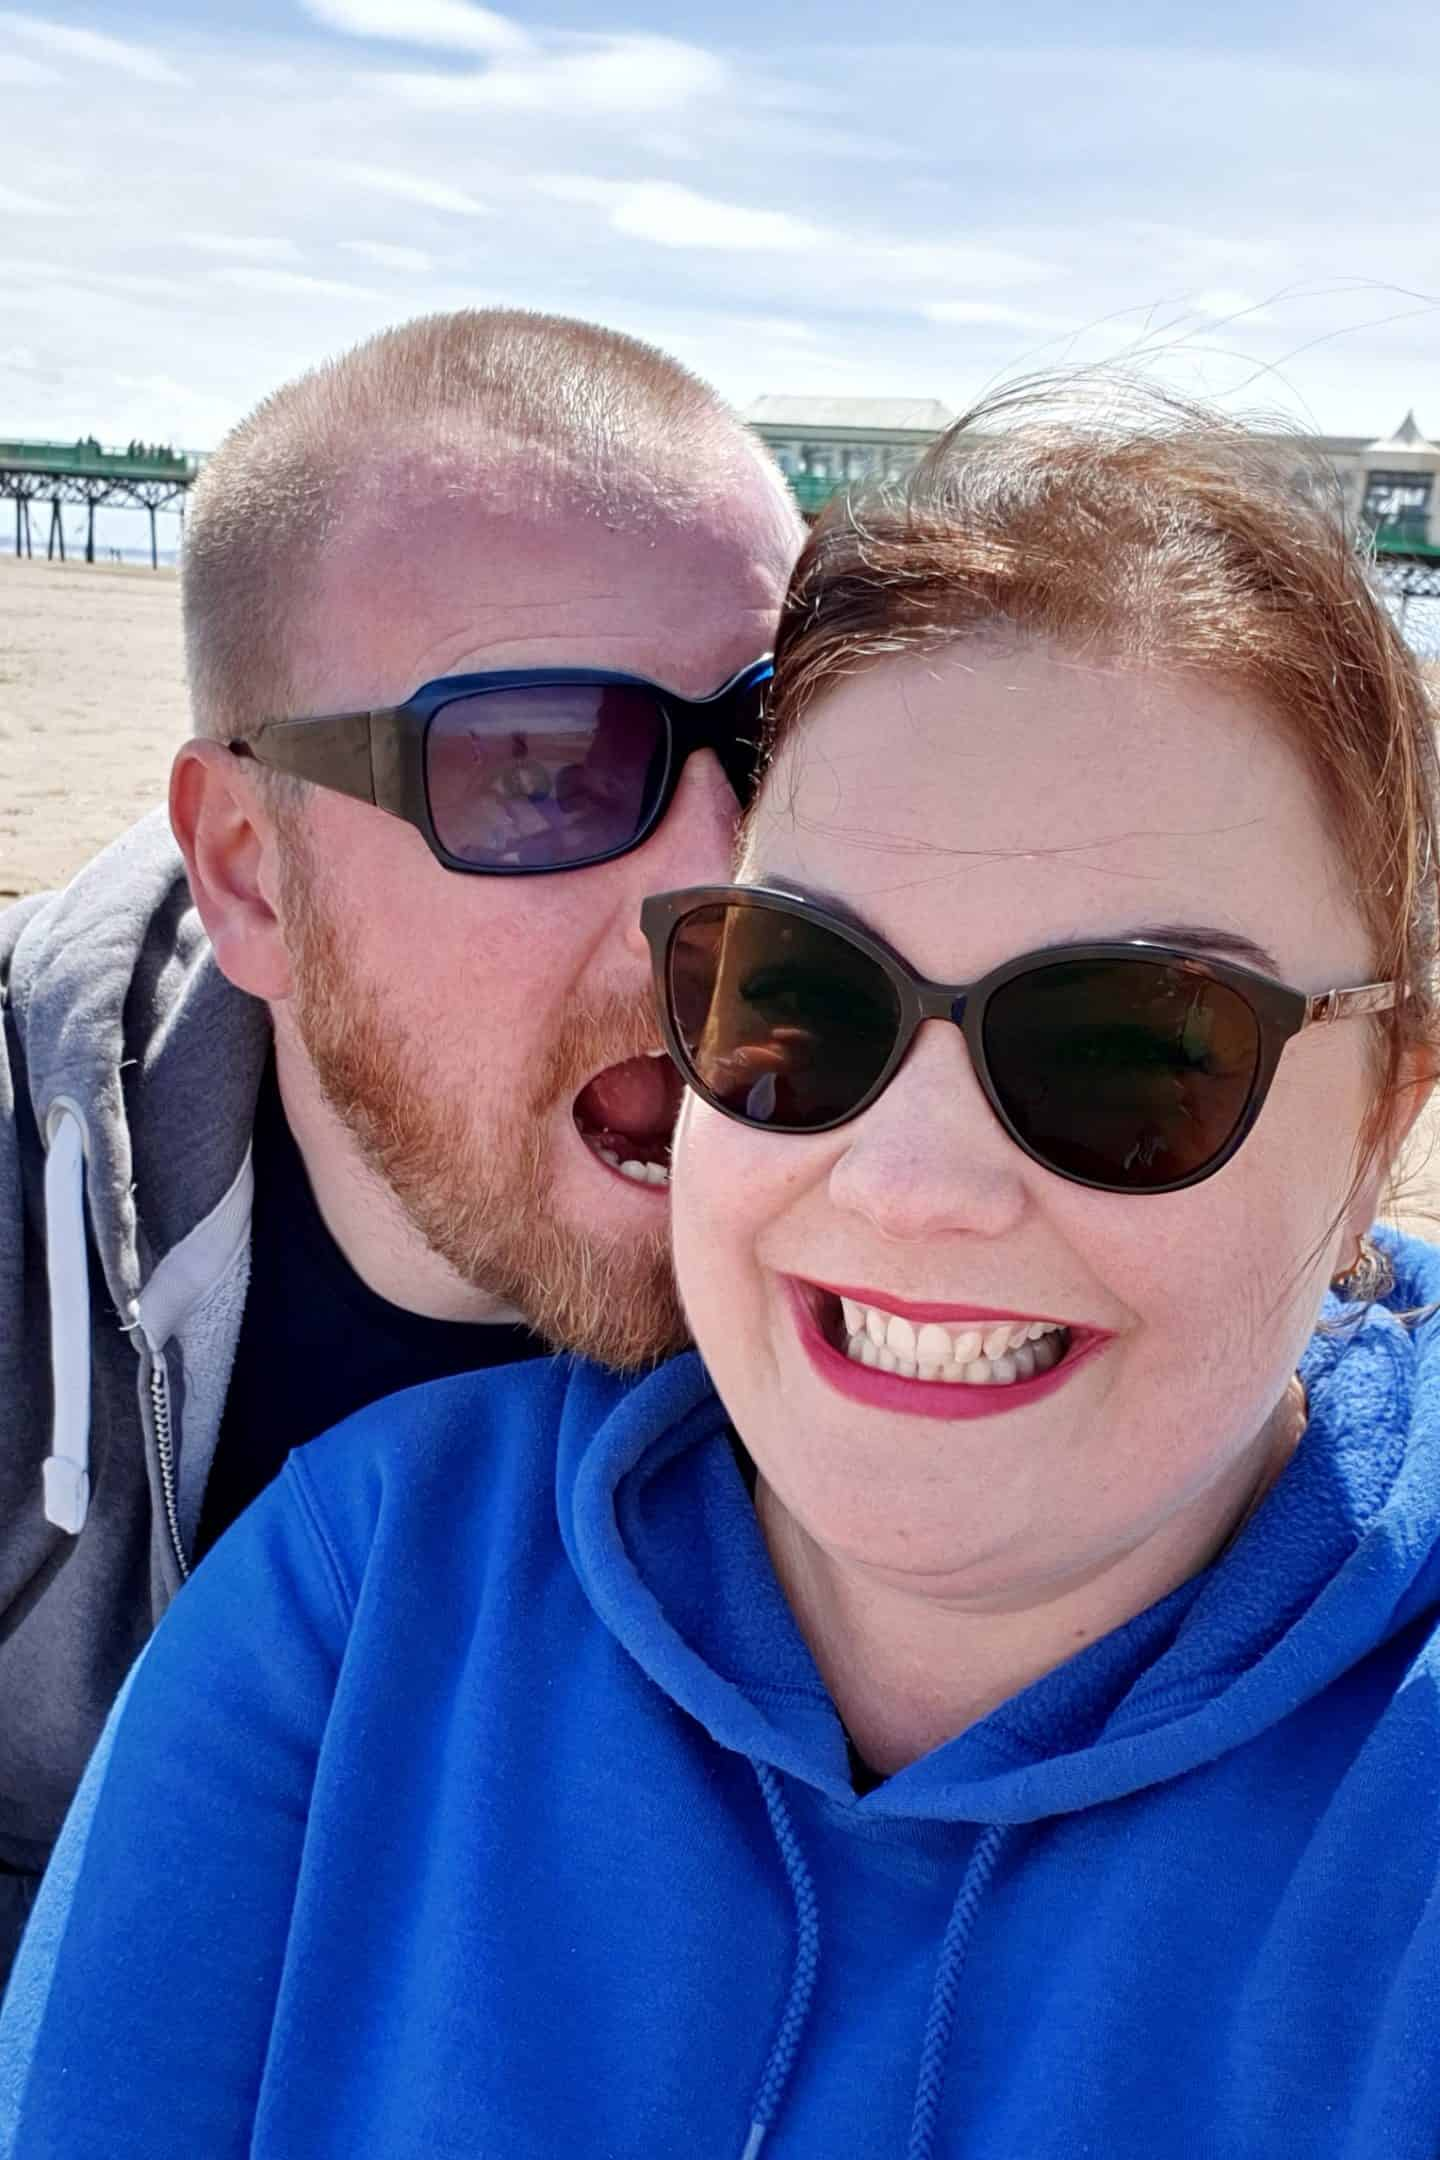 husband and wife on the beach in Lytham